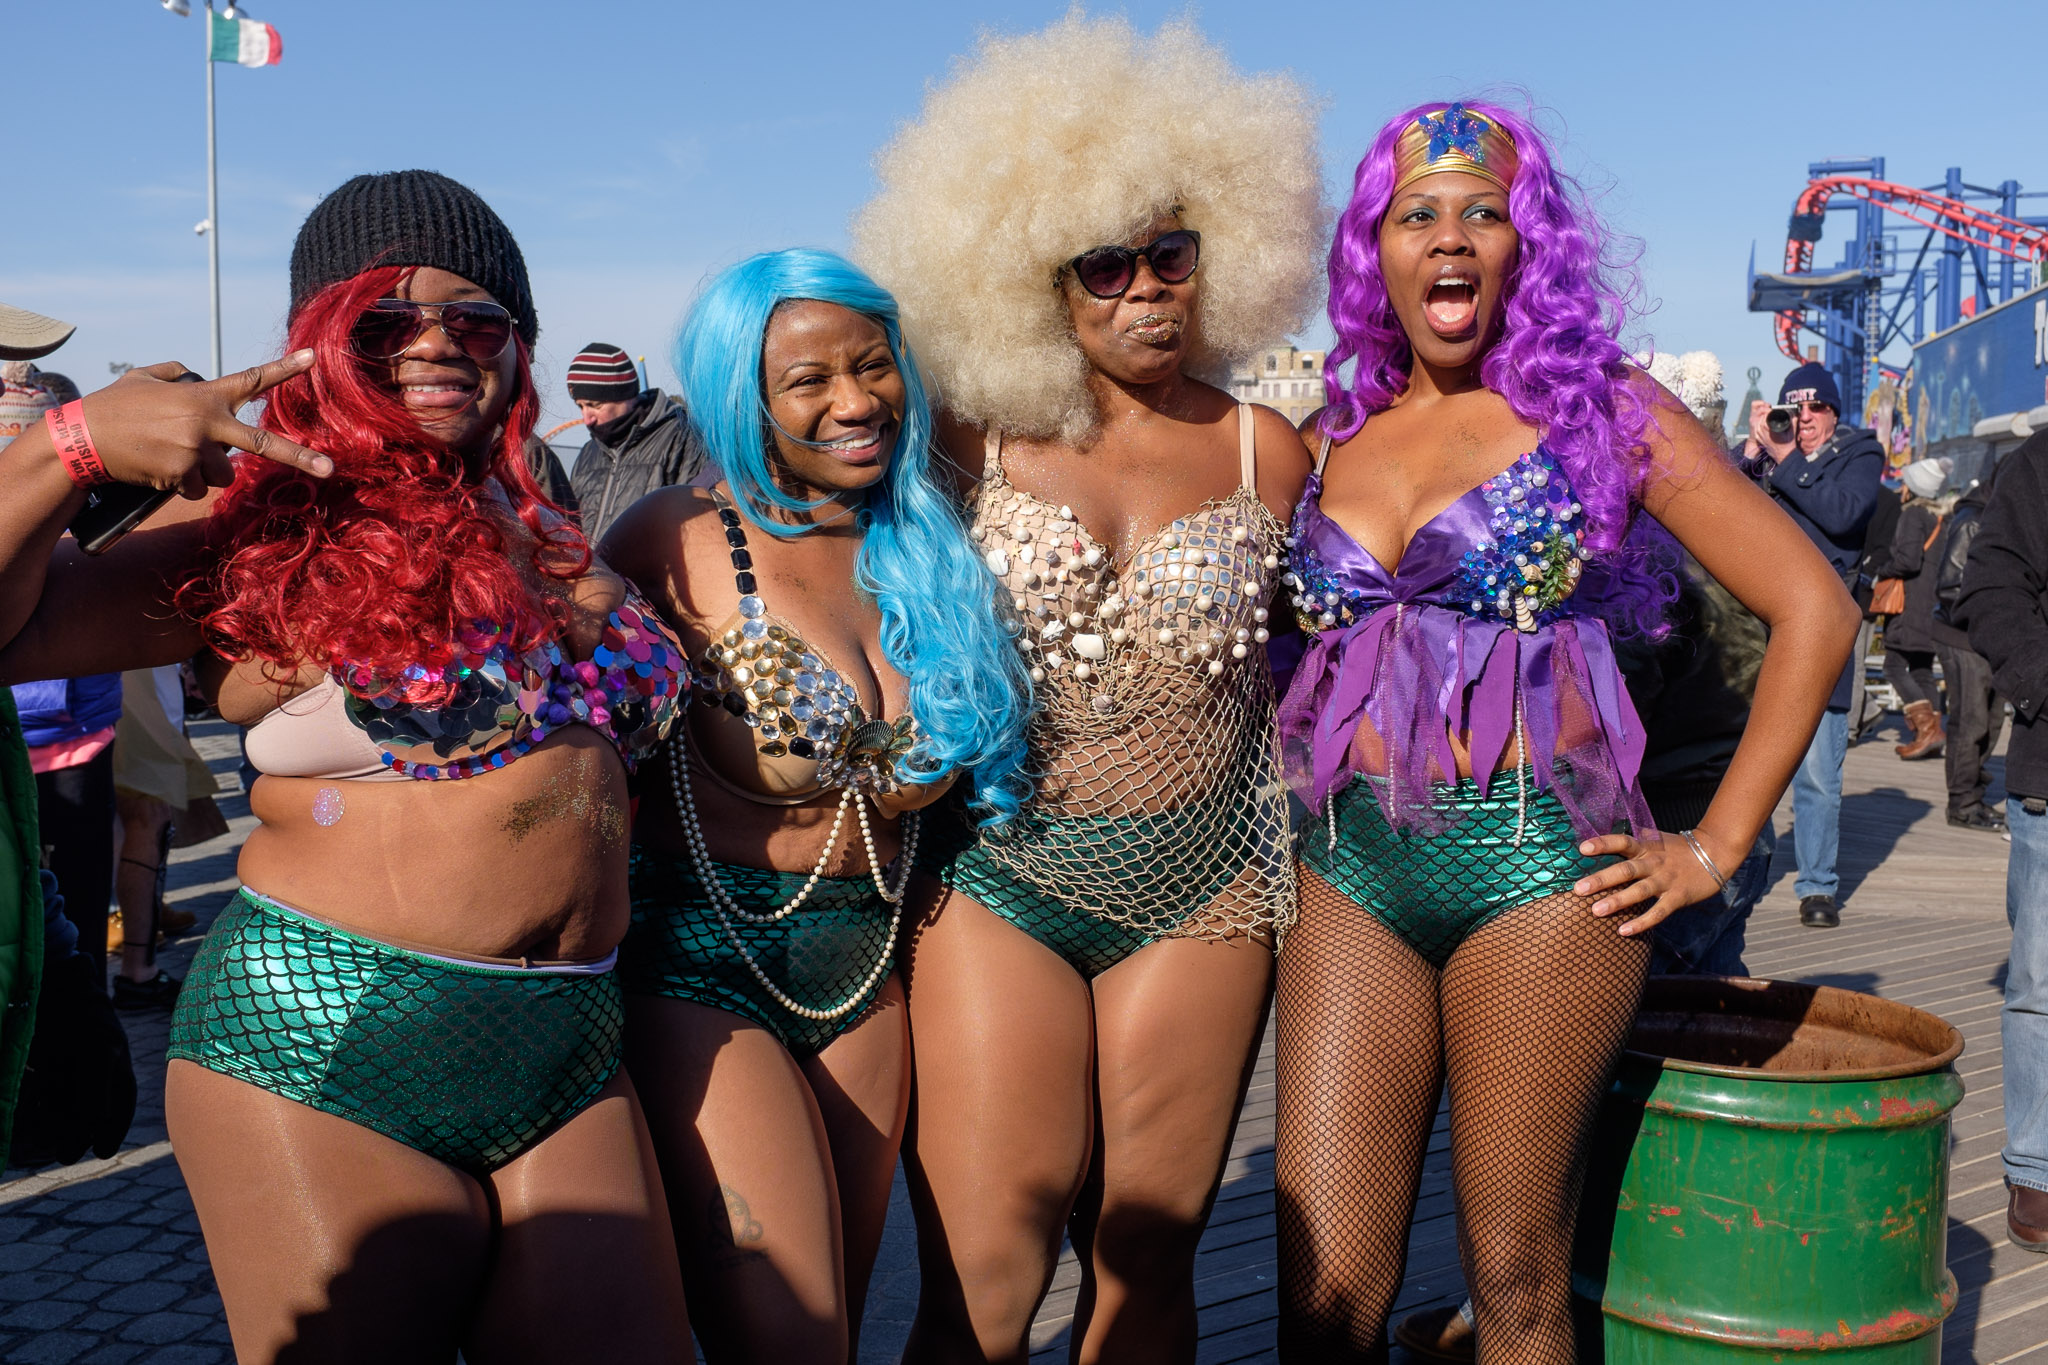 coney_island_new_years_day_swim_002.jpg